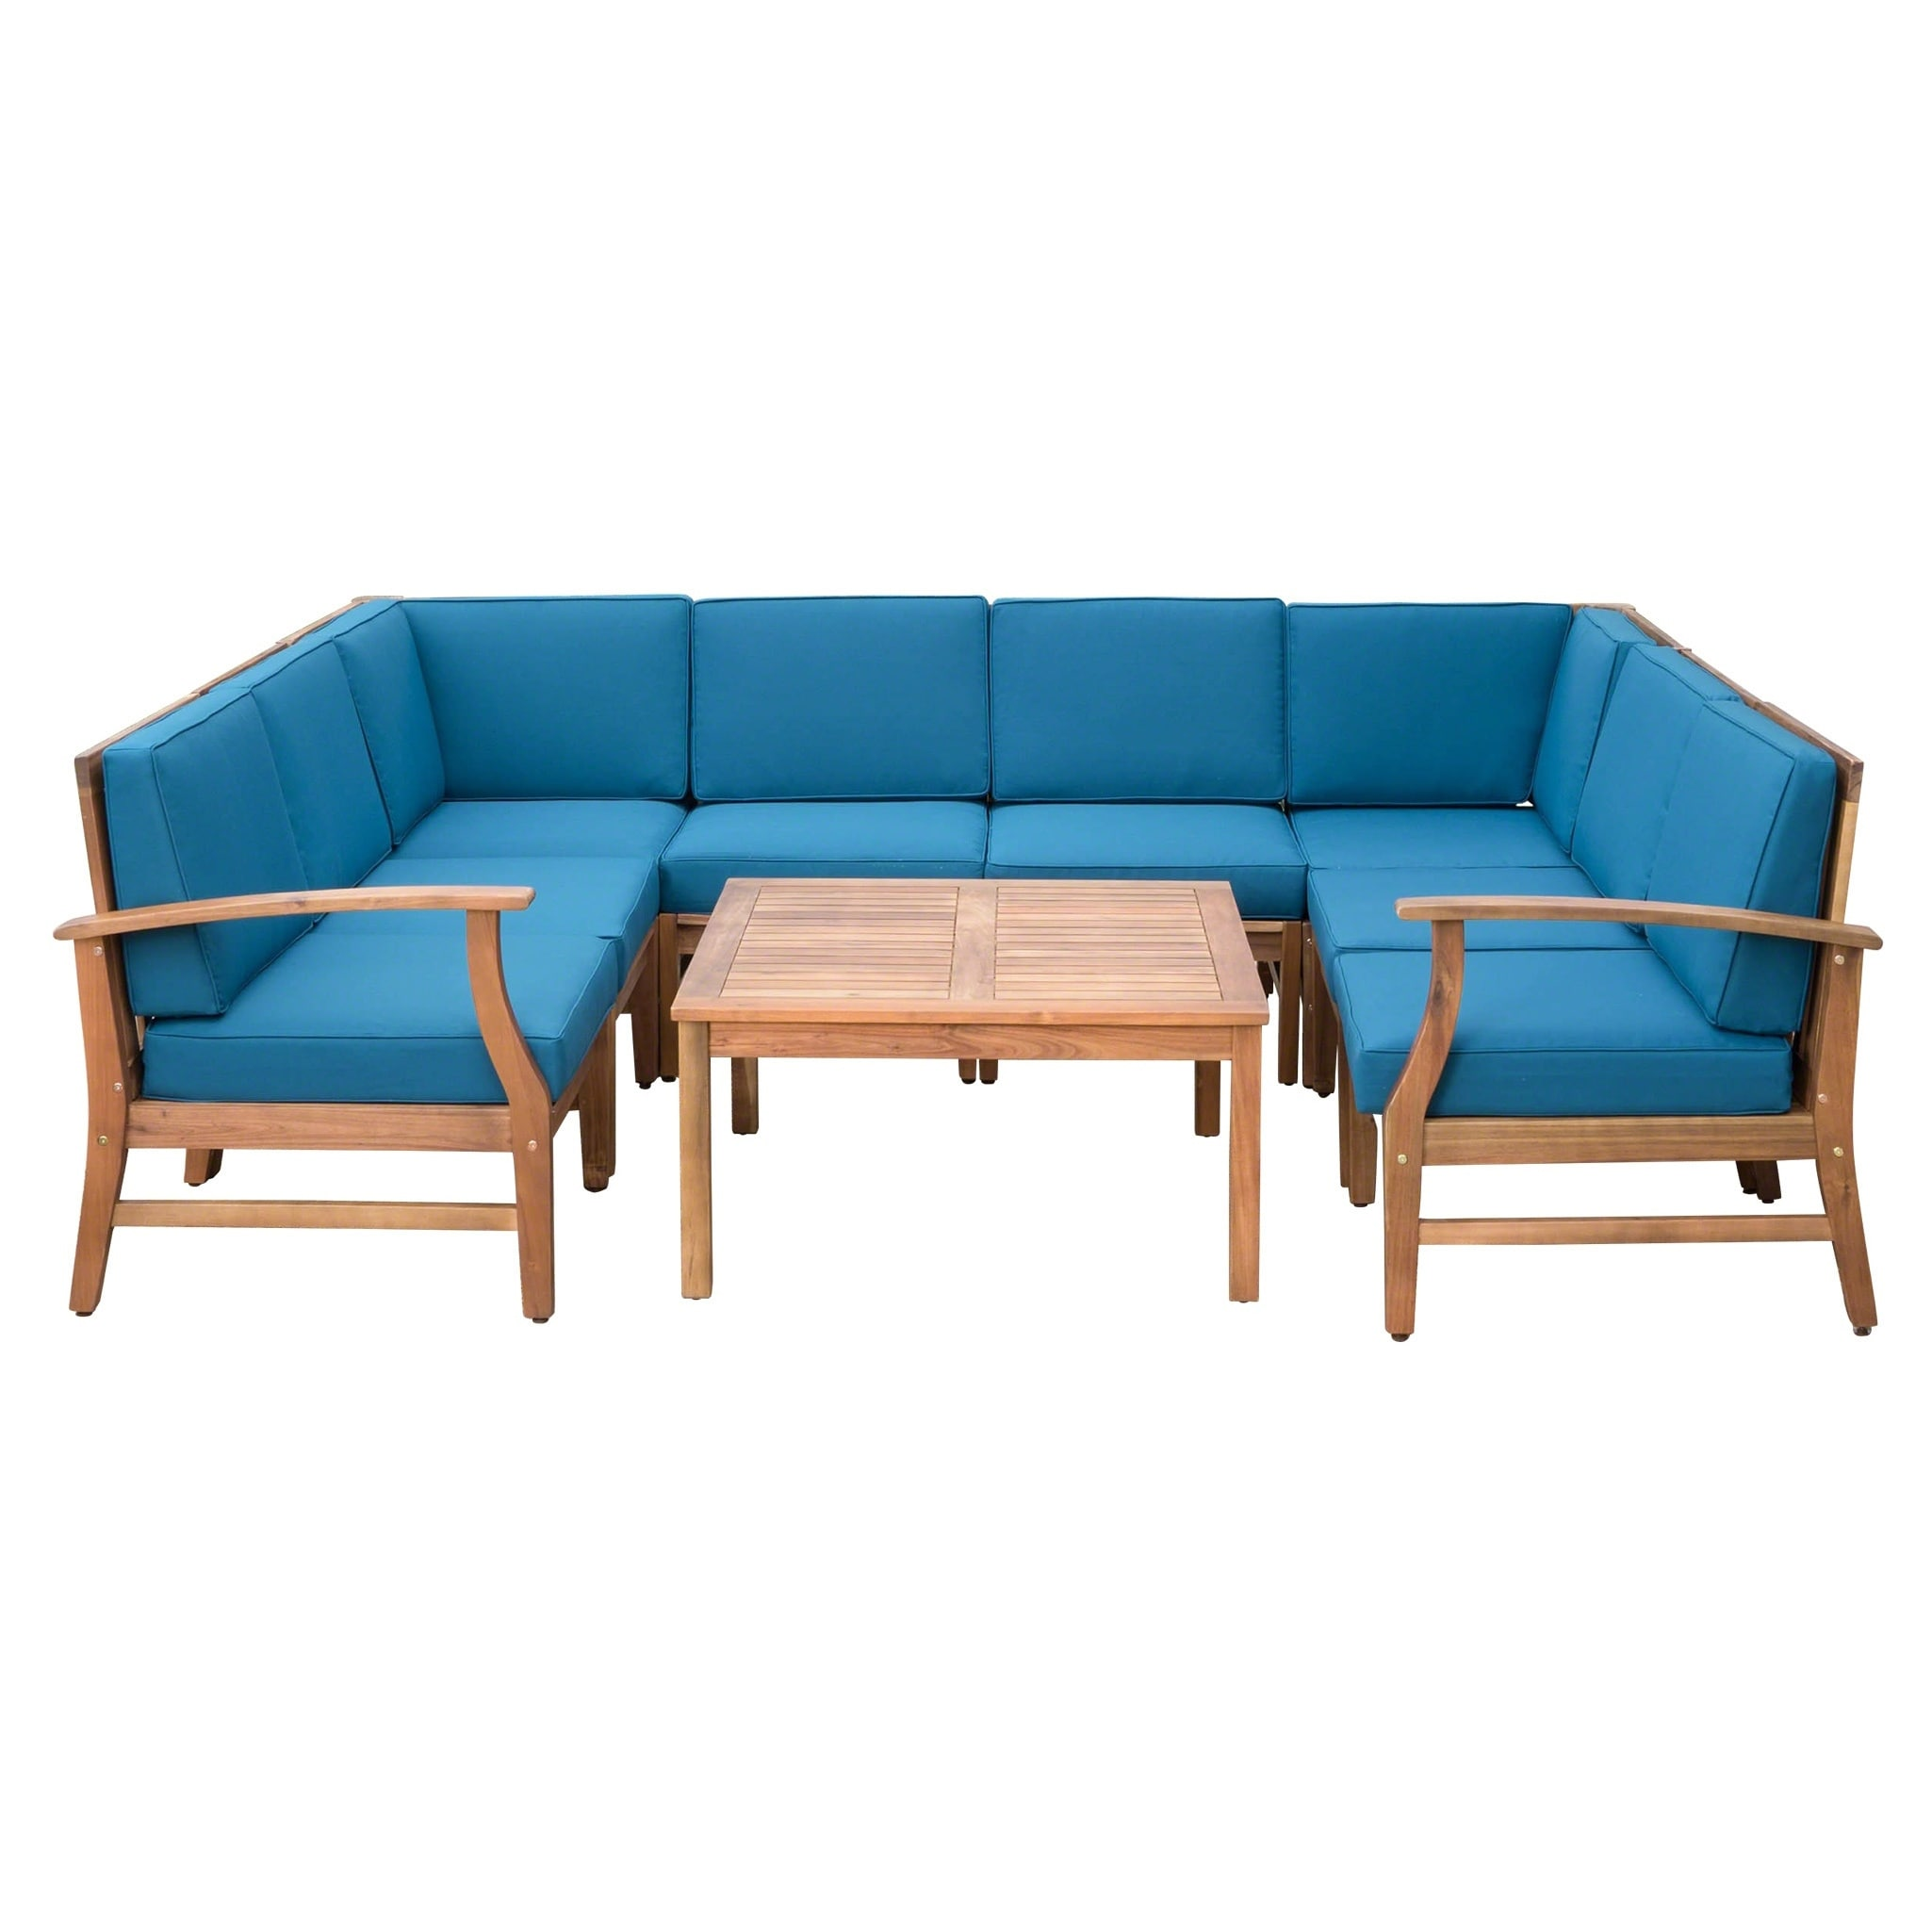 Pleasing Details About Perla Outdoor Acacia Wood 9 Piece Sectional Sofa Set With Brown 9 Piece Sets Short Links Chair Design For Home Short Linksinfo